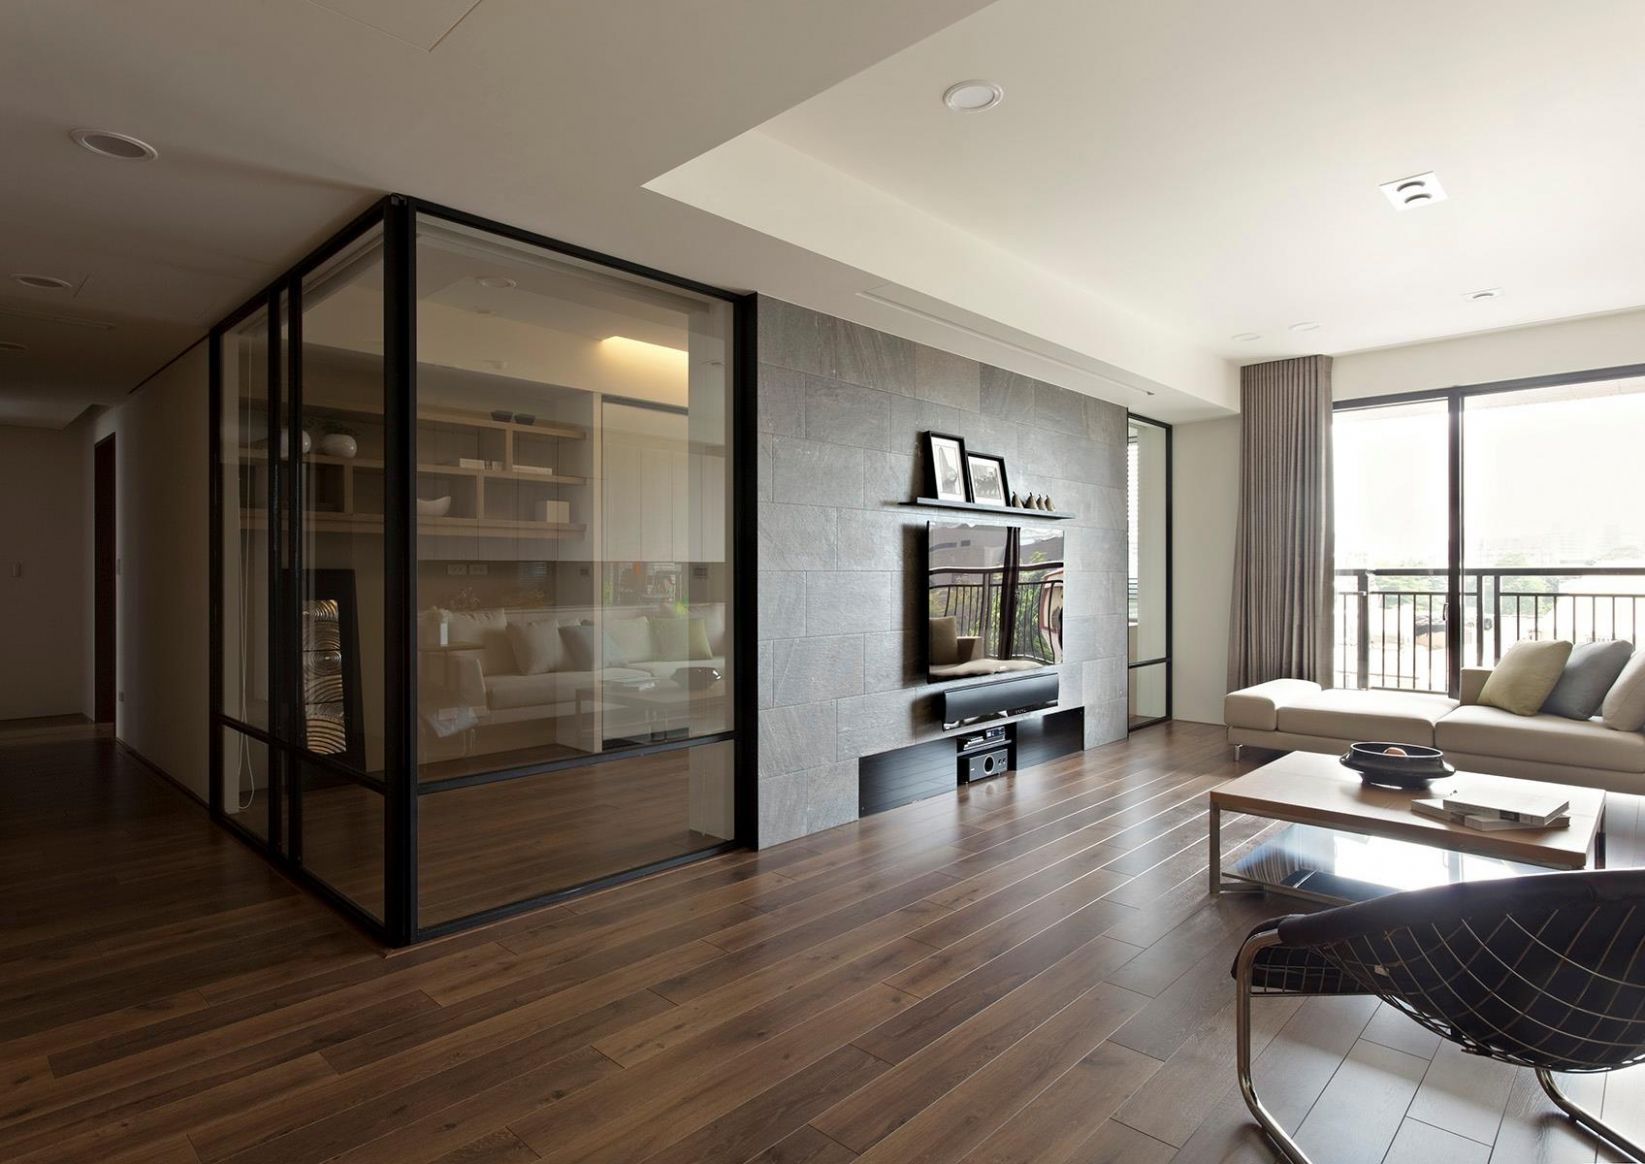 Apartment With A Retractable Interior Wall - apartment wall design